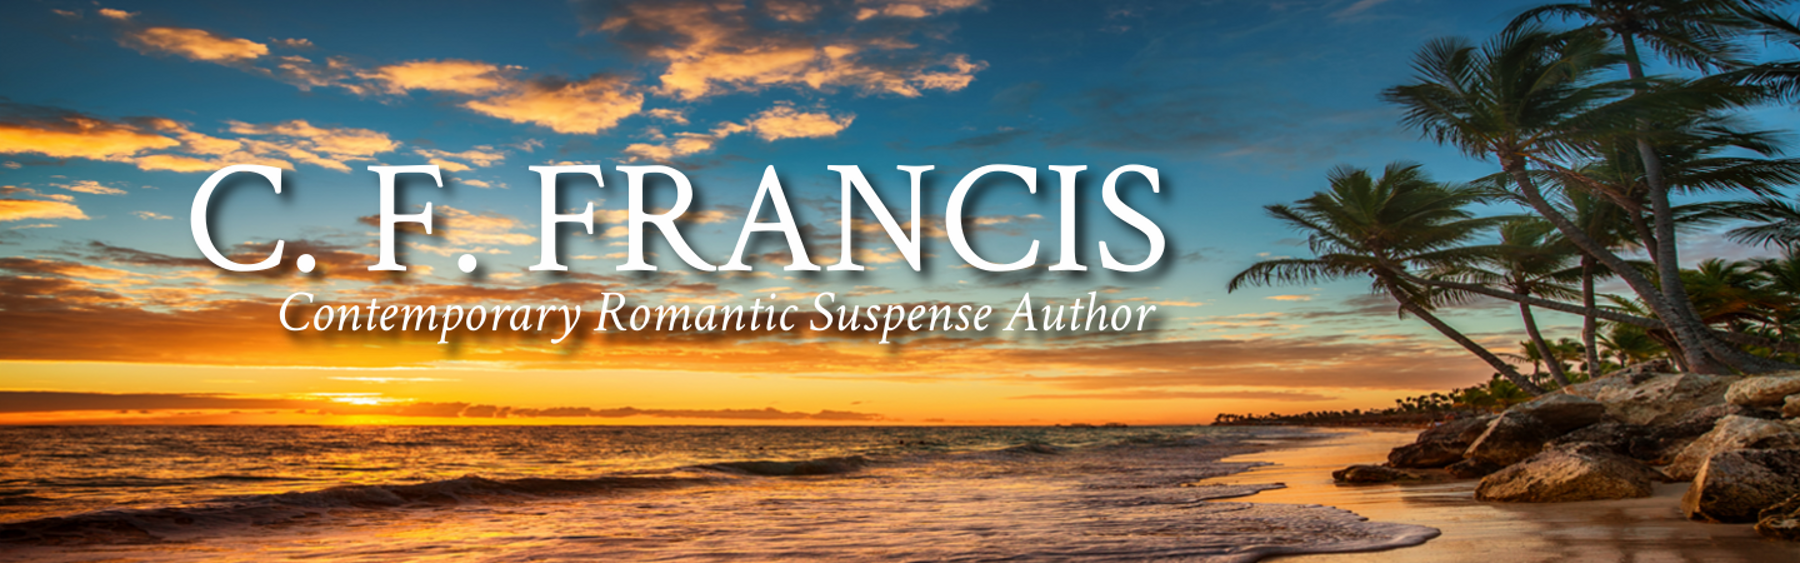 C. F. FRANCIS, Contemporary Romantic Suspense Author